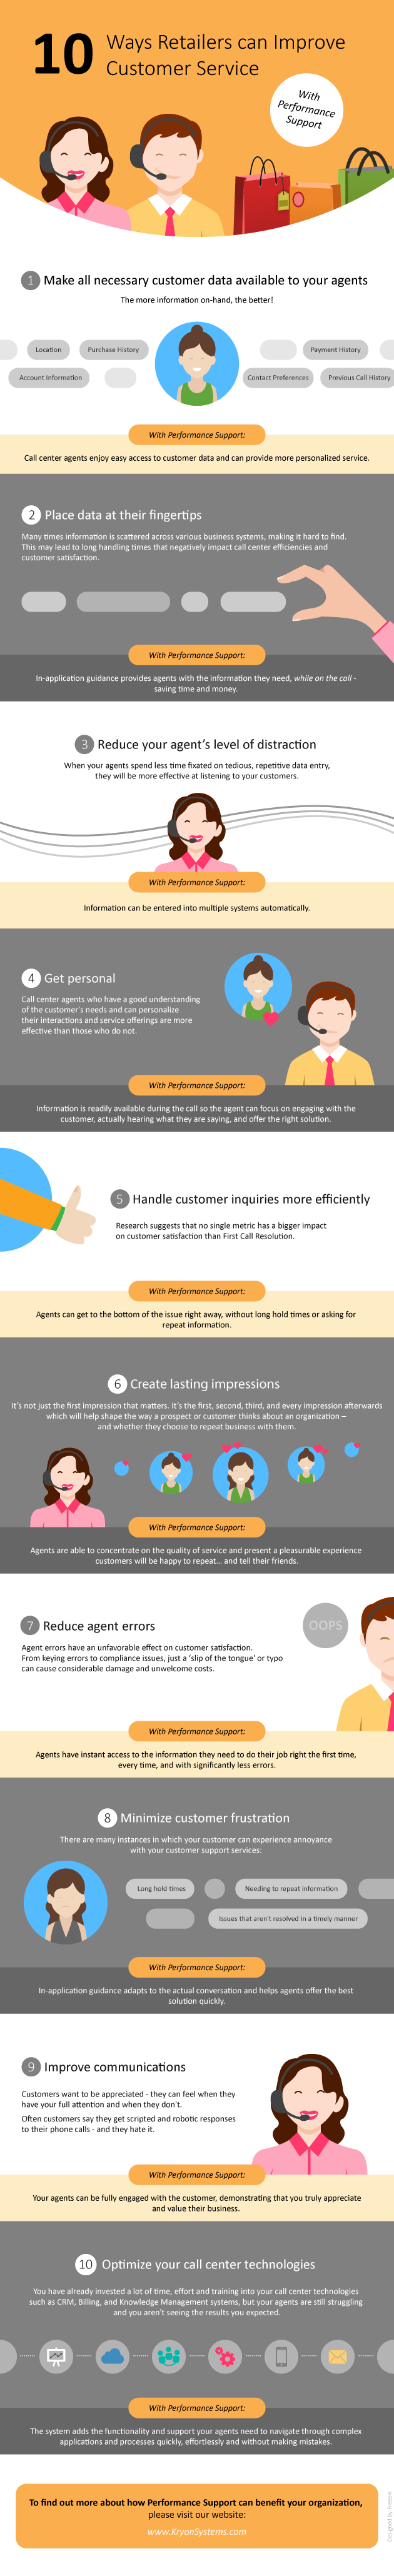 10-Ways-Retailers-can-Improve-Customer-Service.png